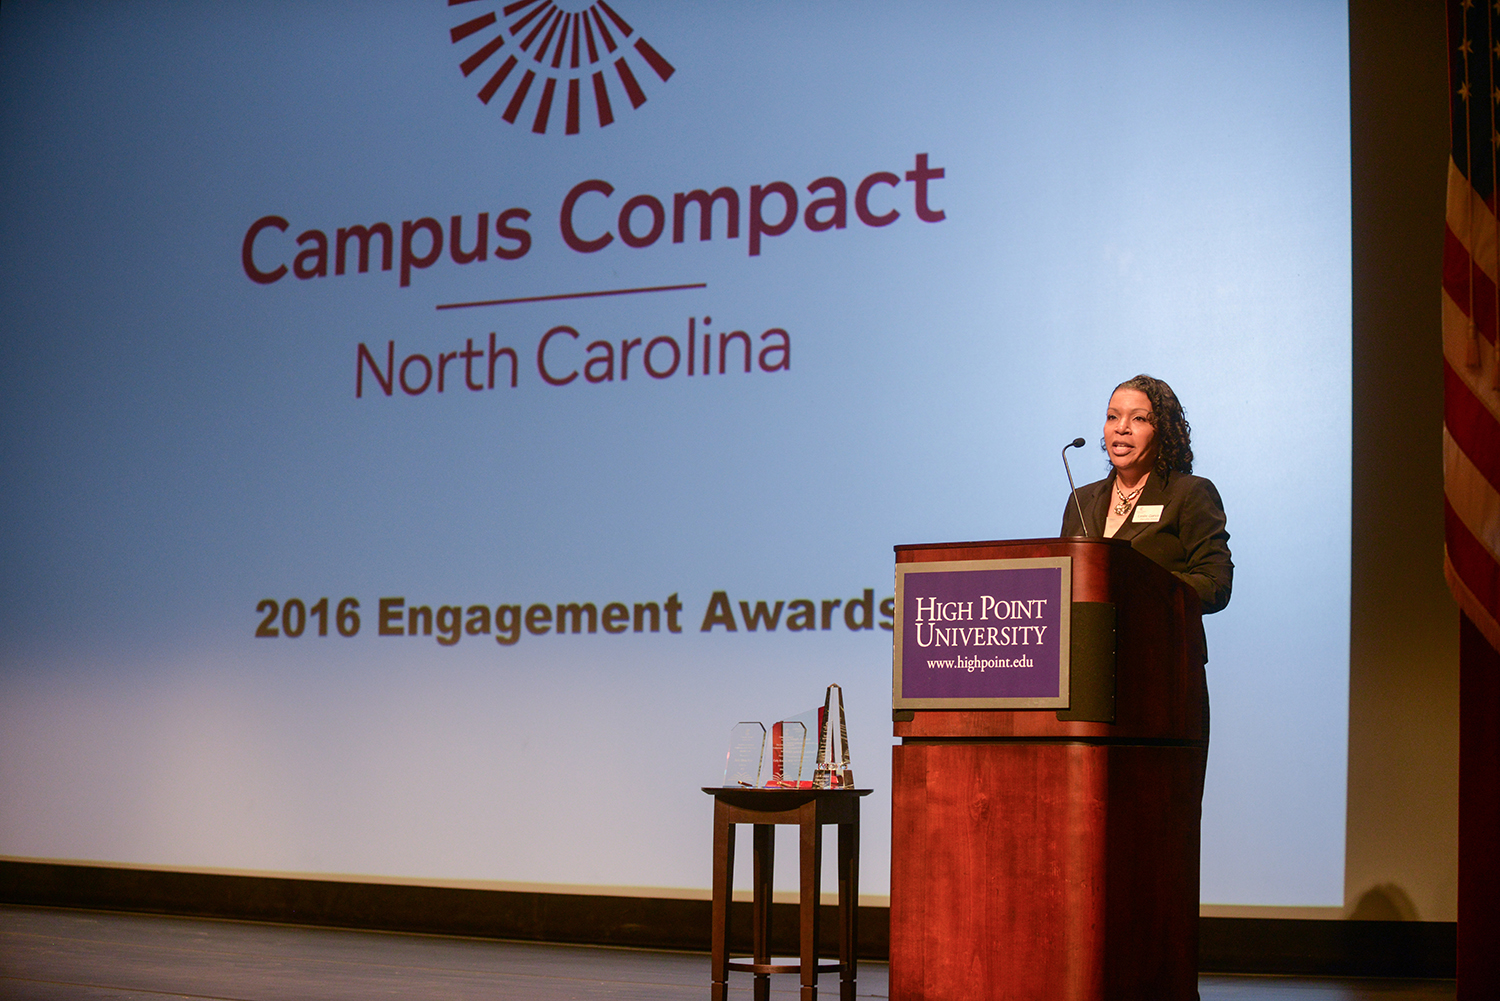 Leslie Garvin, executive director of the North Carolina Campus Compact, addressed the audience of nearly 400 college and university leaders.